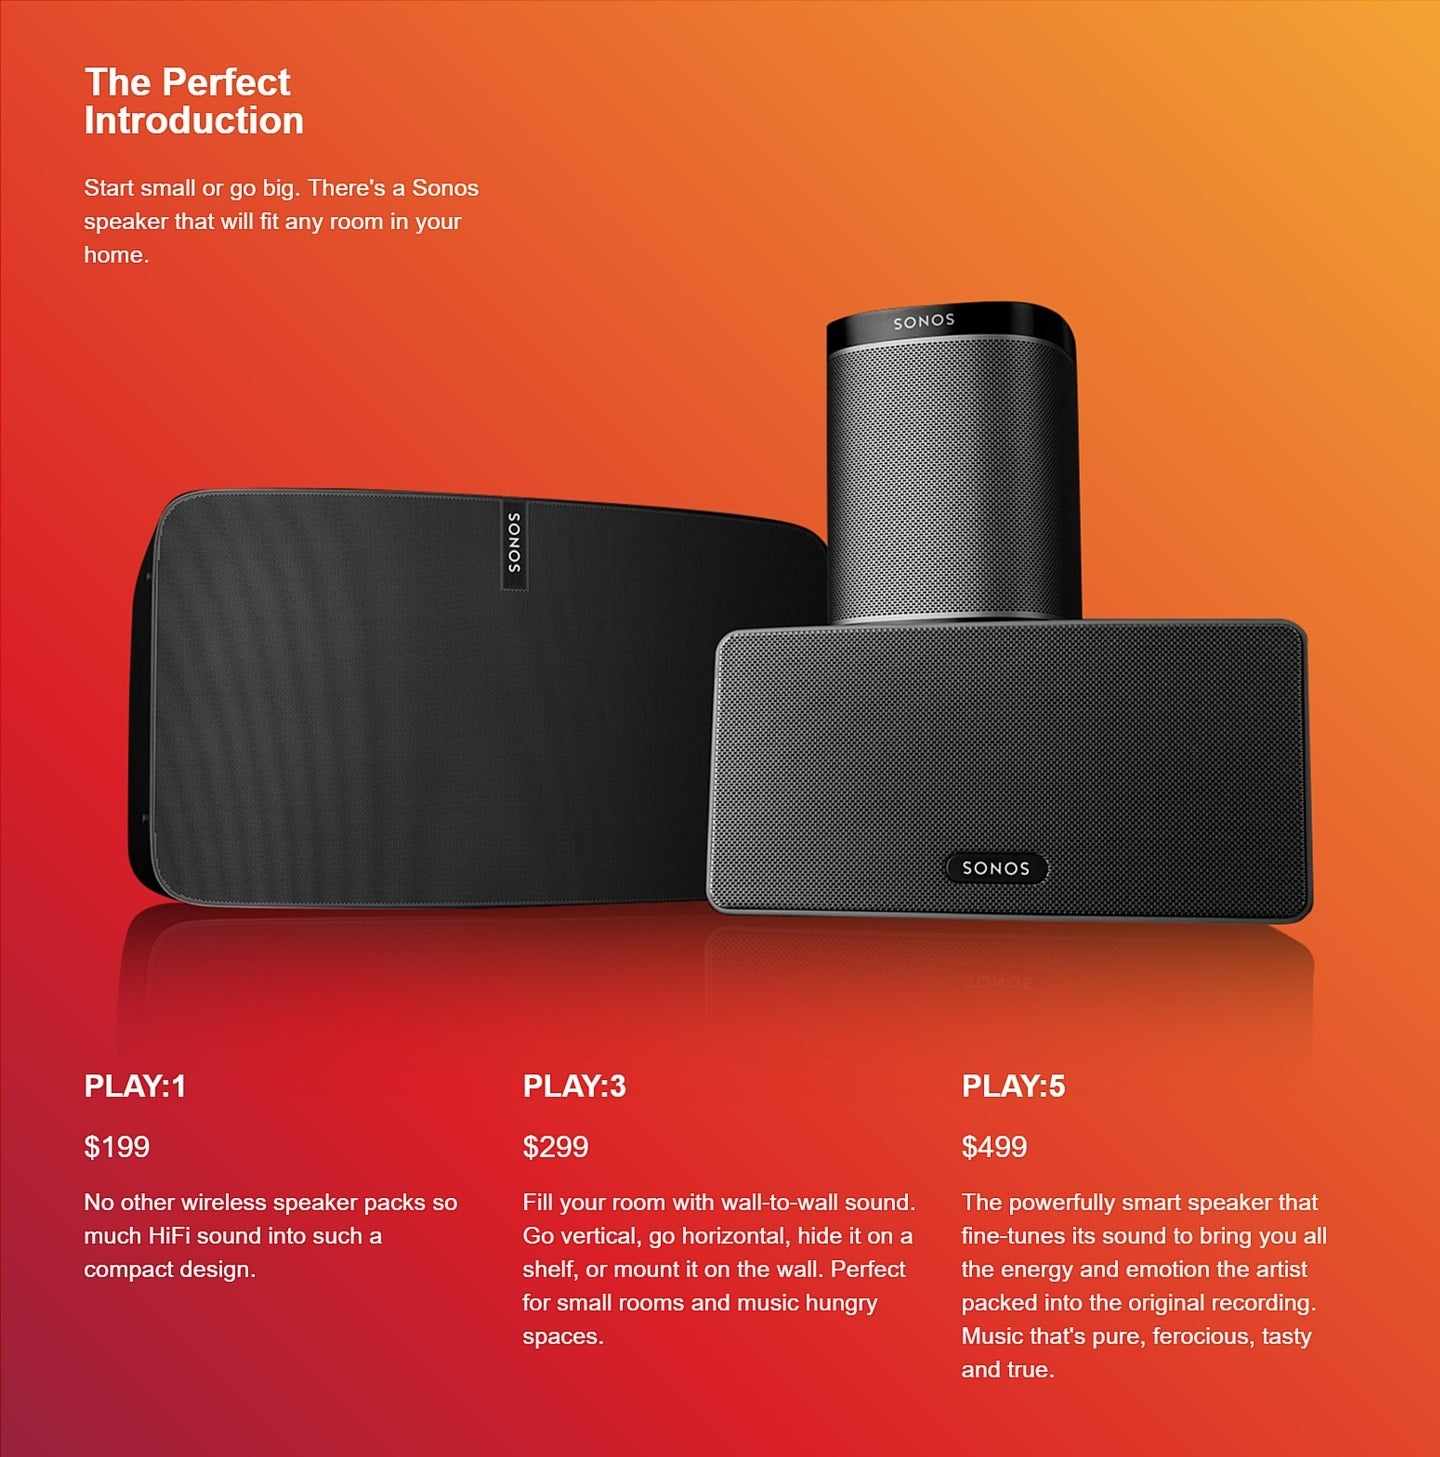 sonos-play1-play3-play5